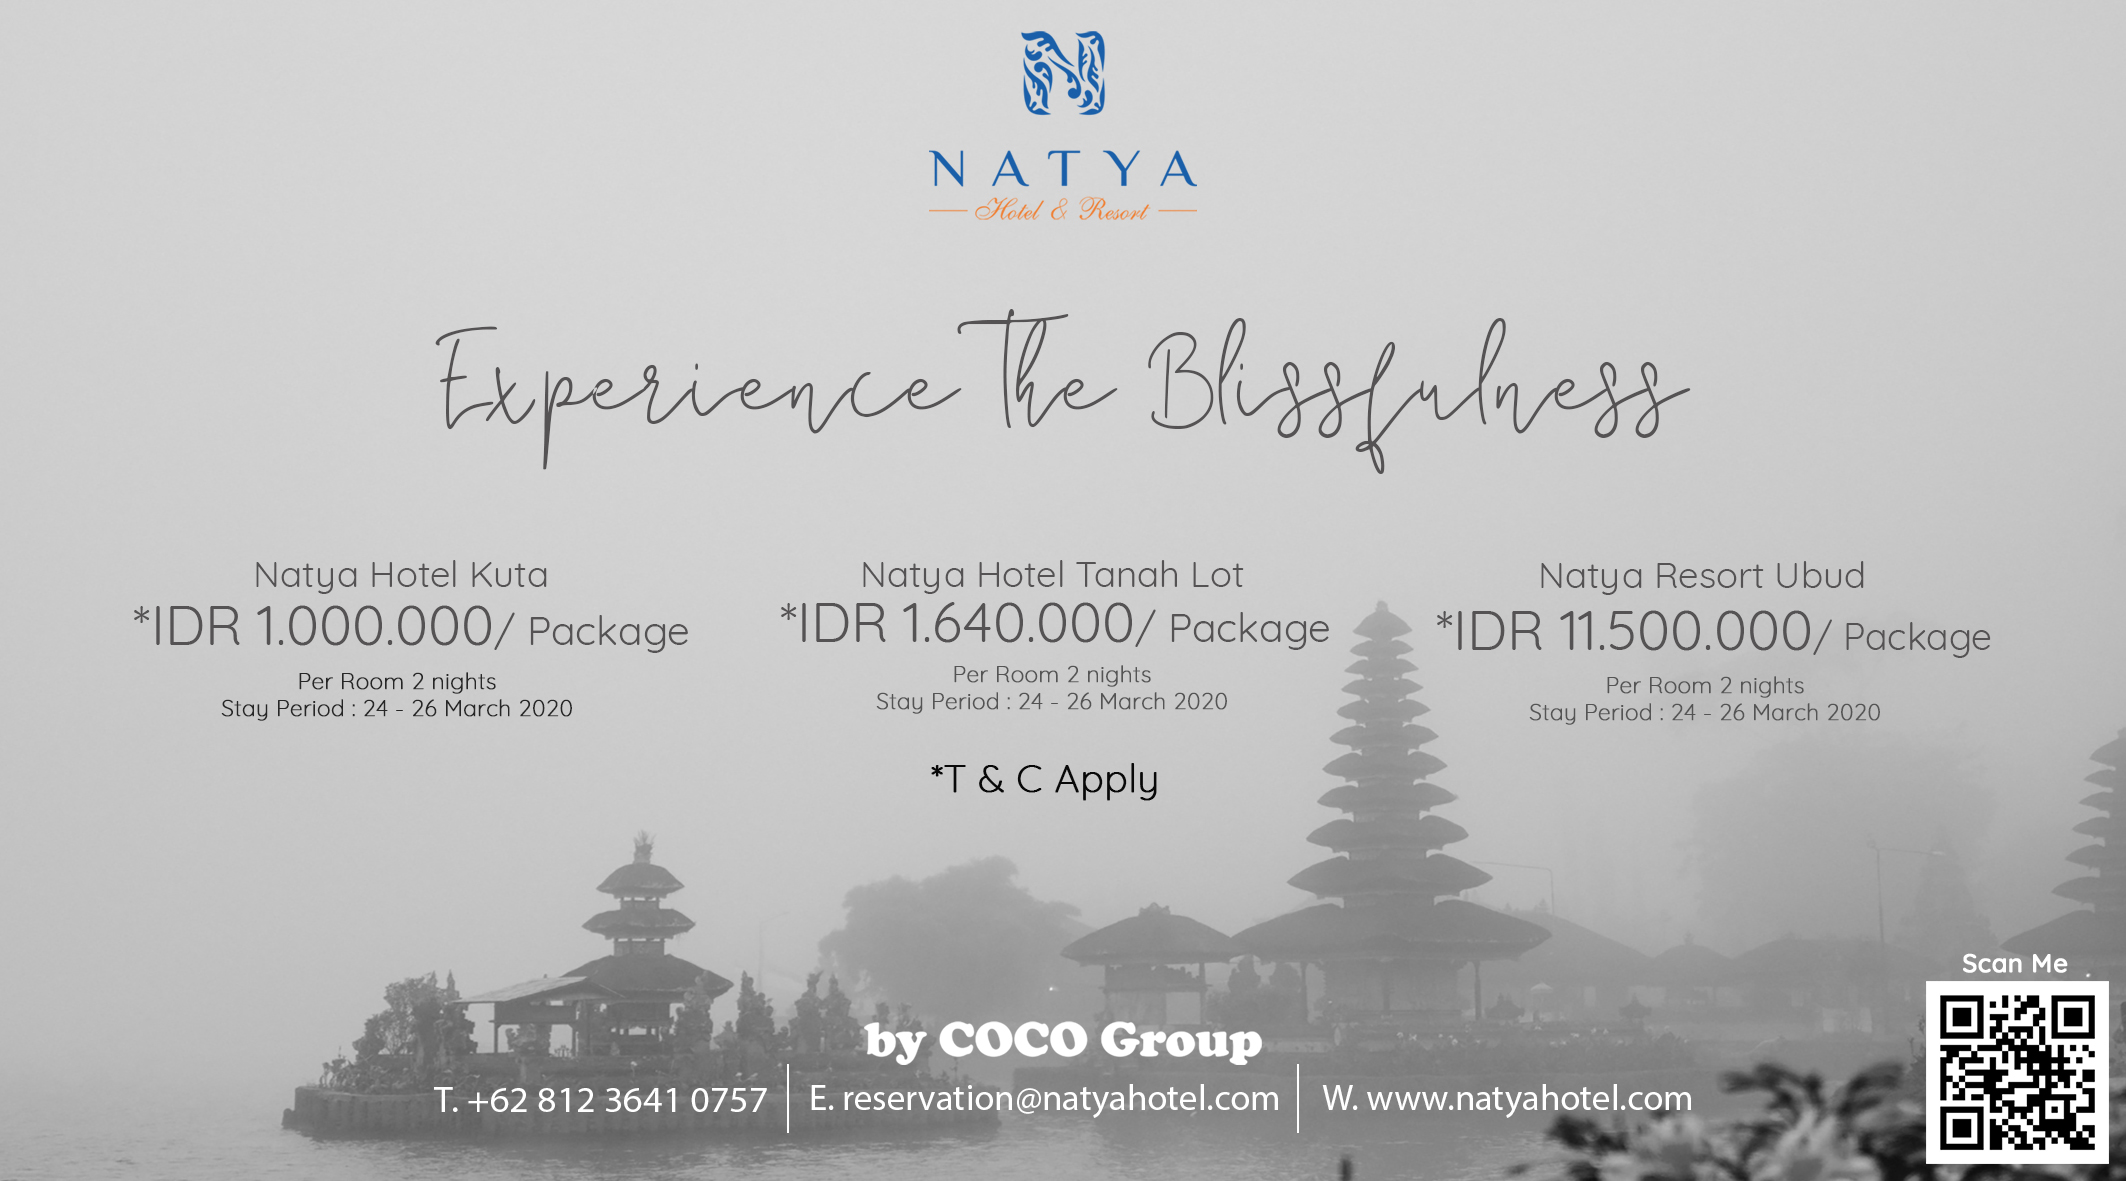 http://highend-traveller.com/natya-hotels-resort-offers-the-beauty-of-bali-and-lombok/